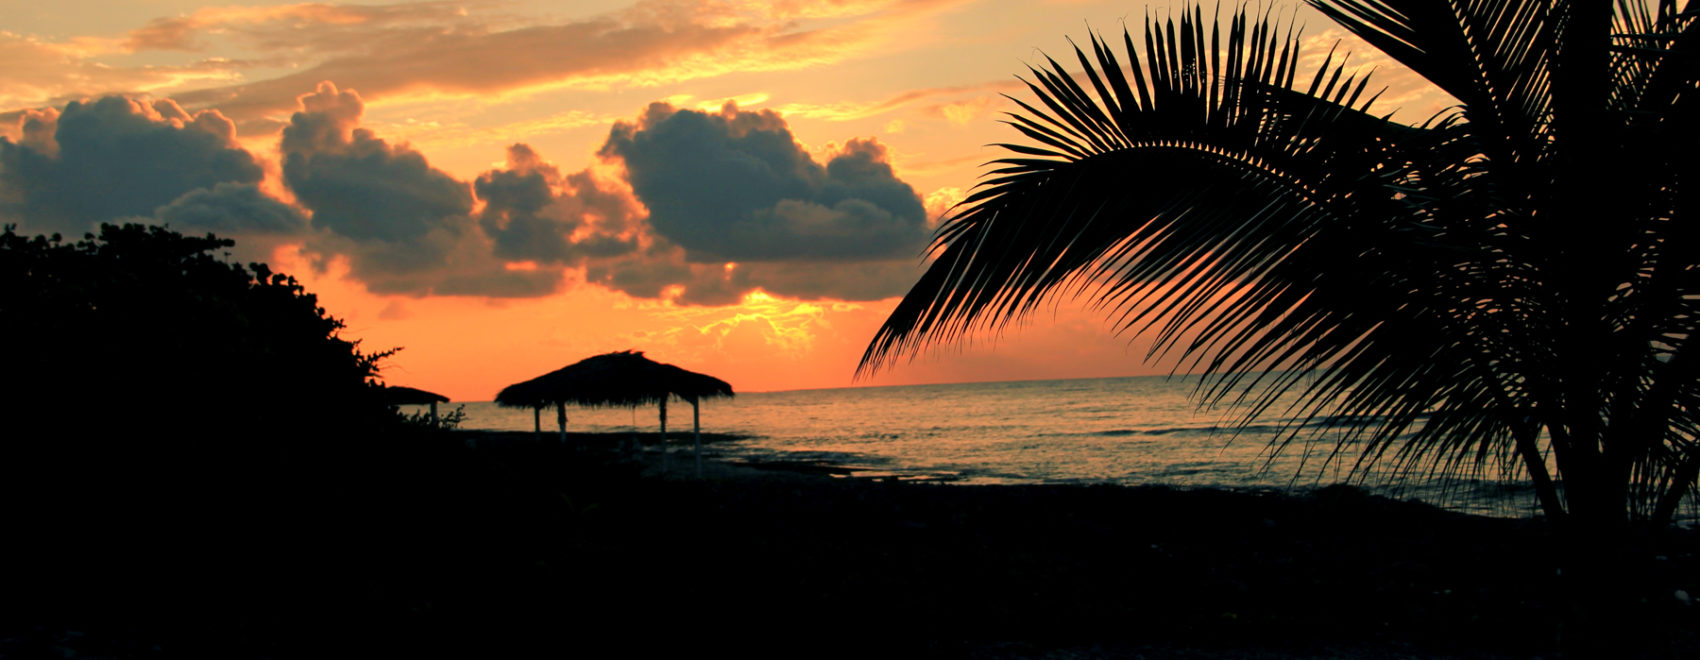 Sunset in the Caymans